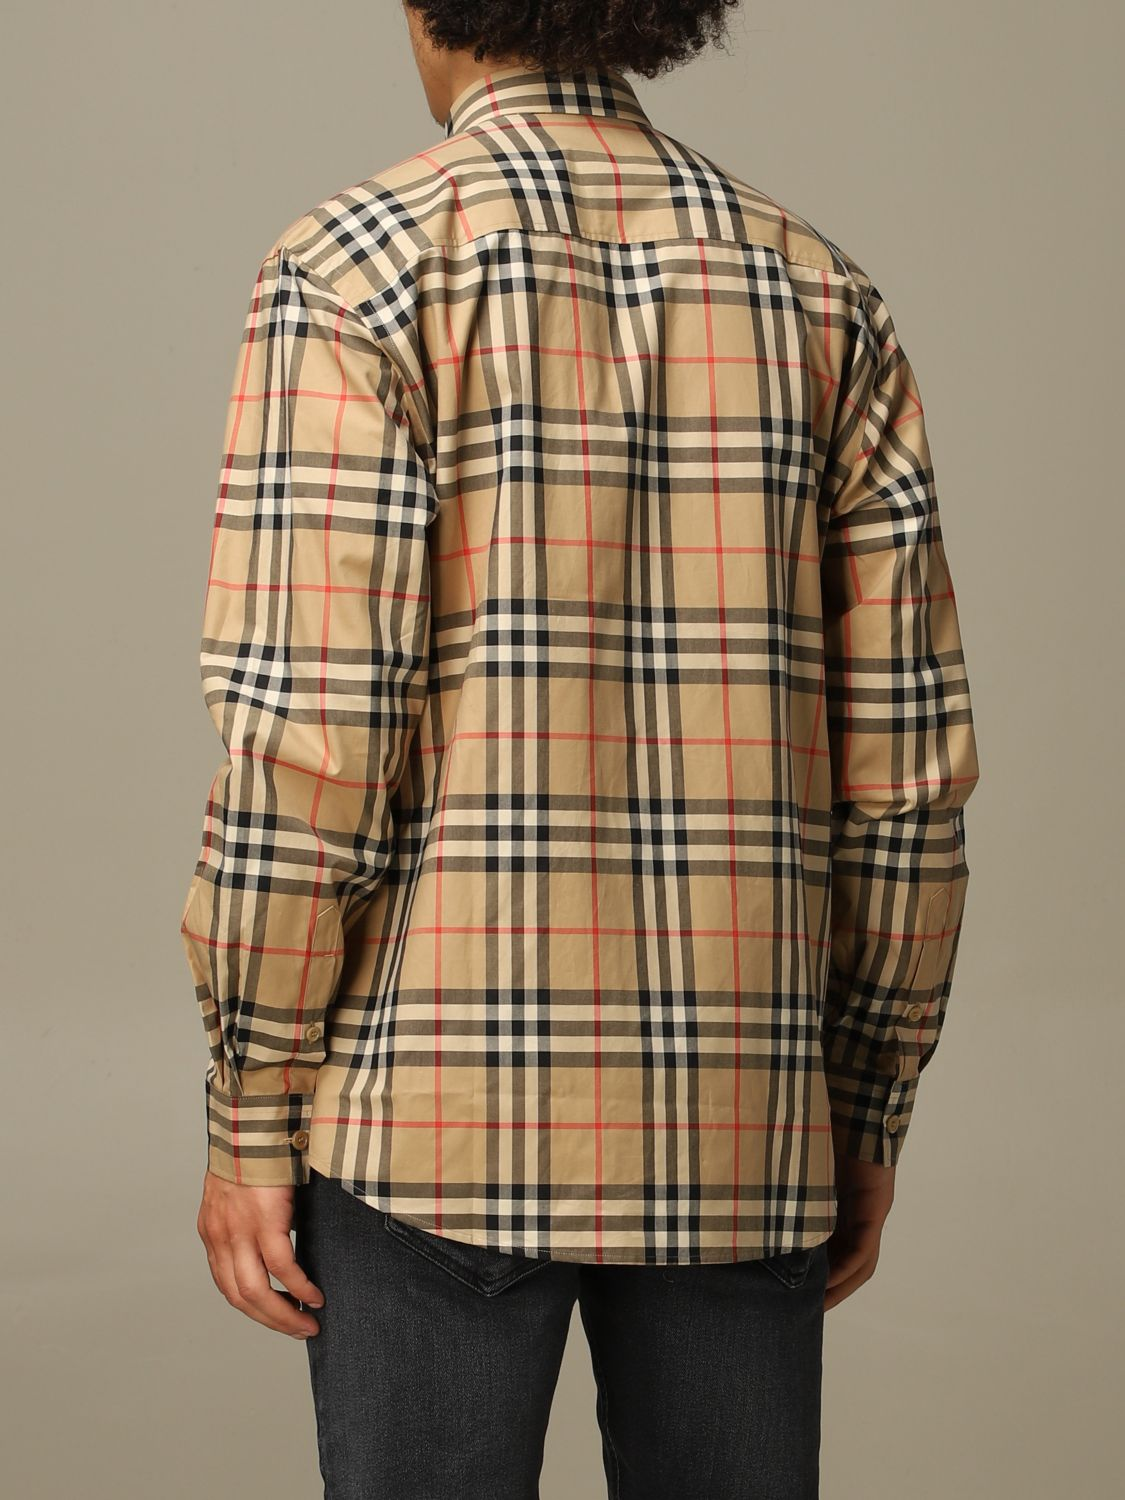 Shirt Burberry: Caxton Burberry shirt in cotton poplin with check pattern beige 2